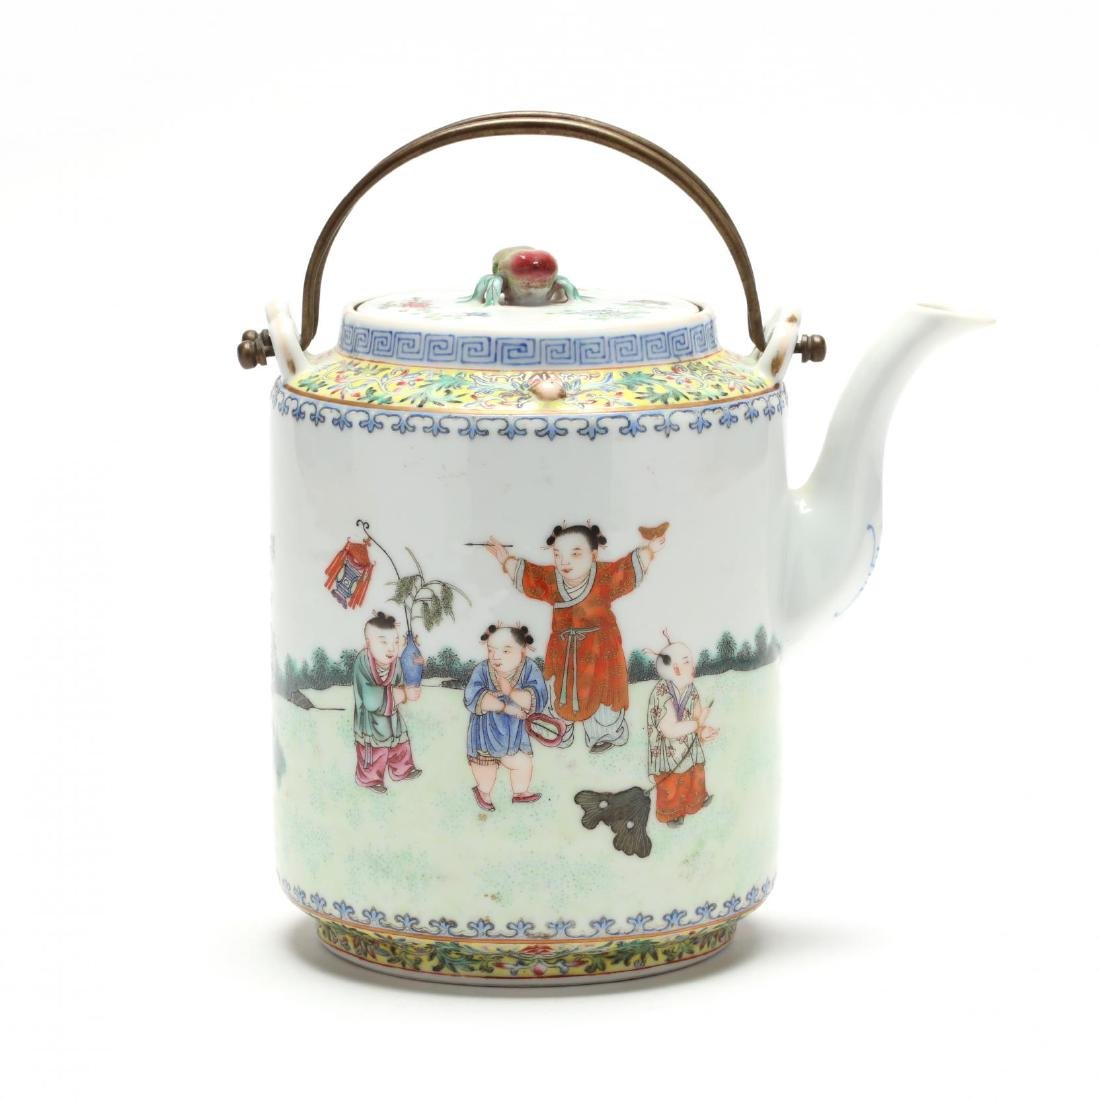 A Chinese Qing Dynasty Porcelain Teapot - 3